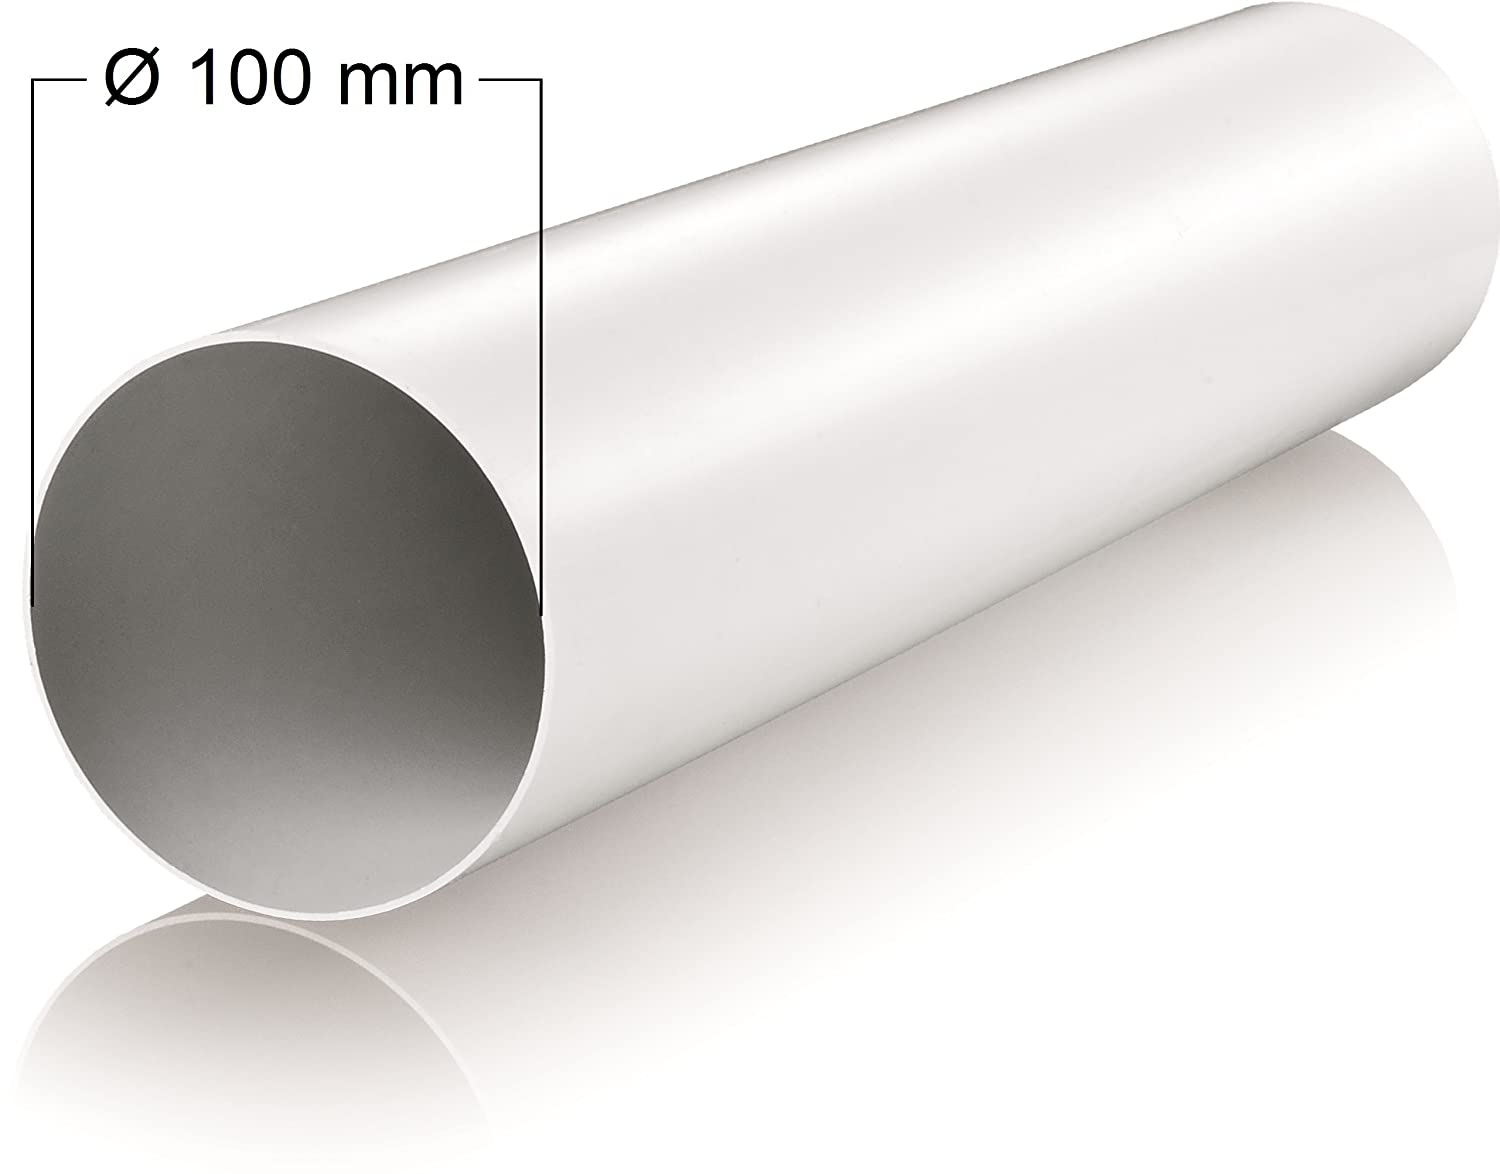 0.5 meter Round Duct Ventilation Plastic Tube KO100-05 4 Length Ducting Pipe 100mm